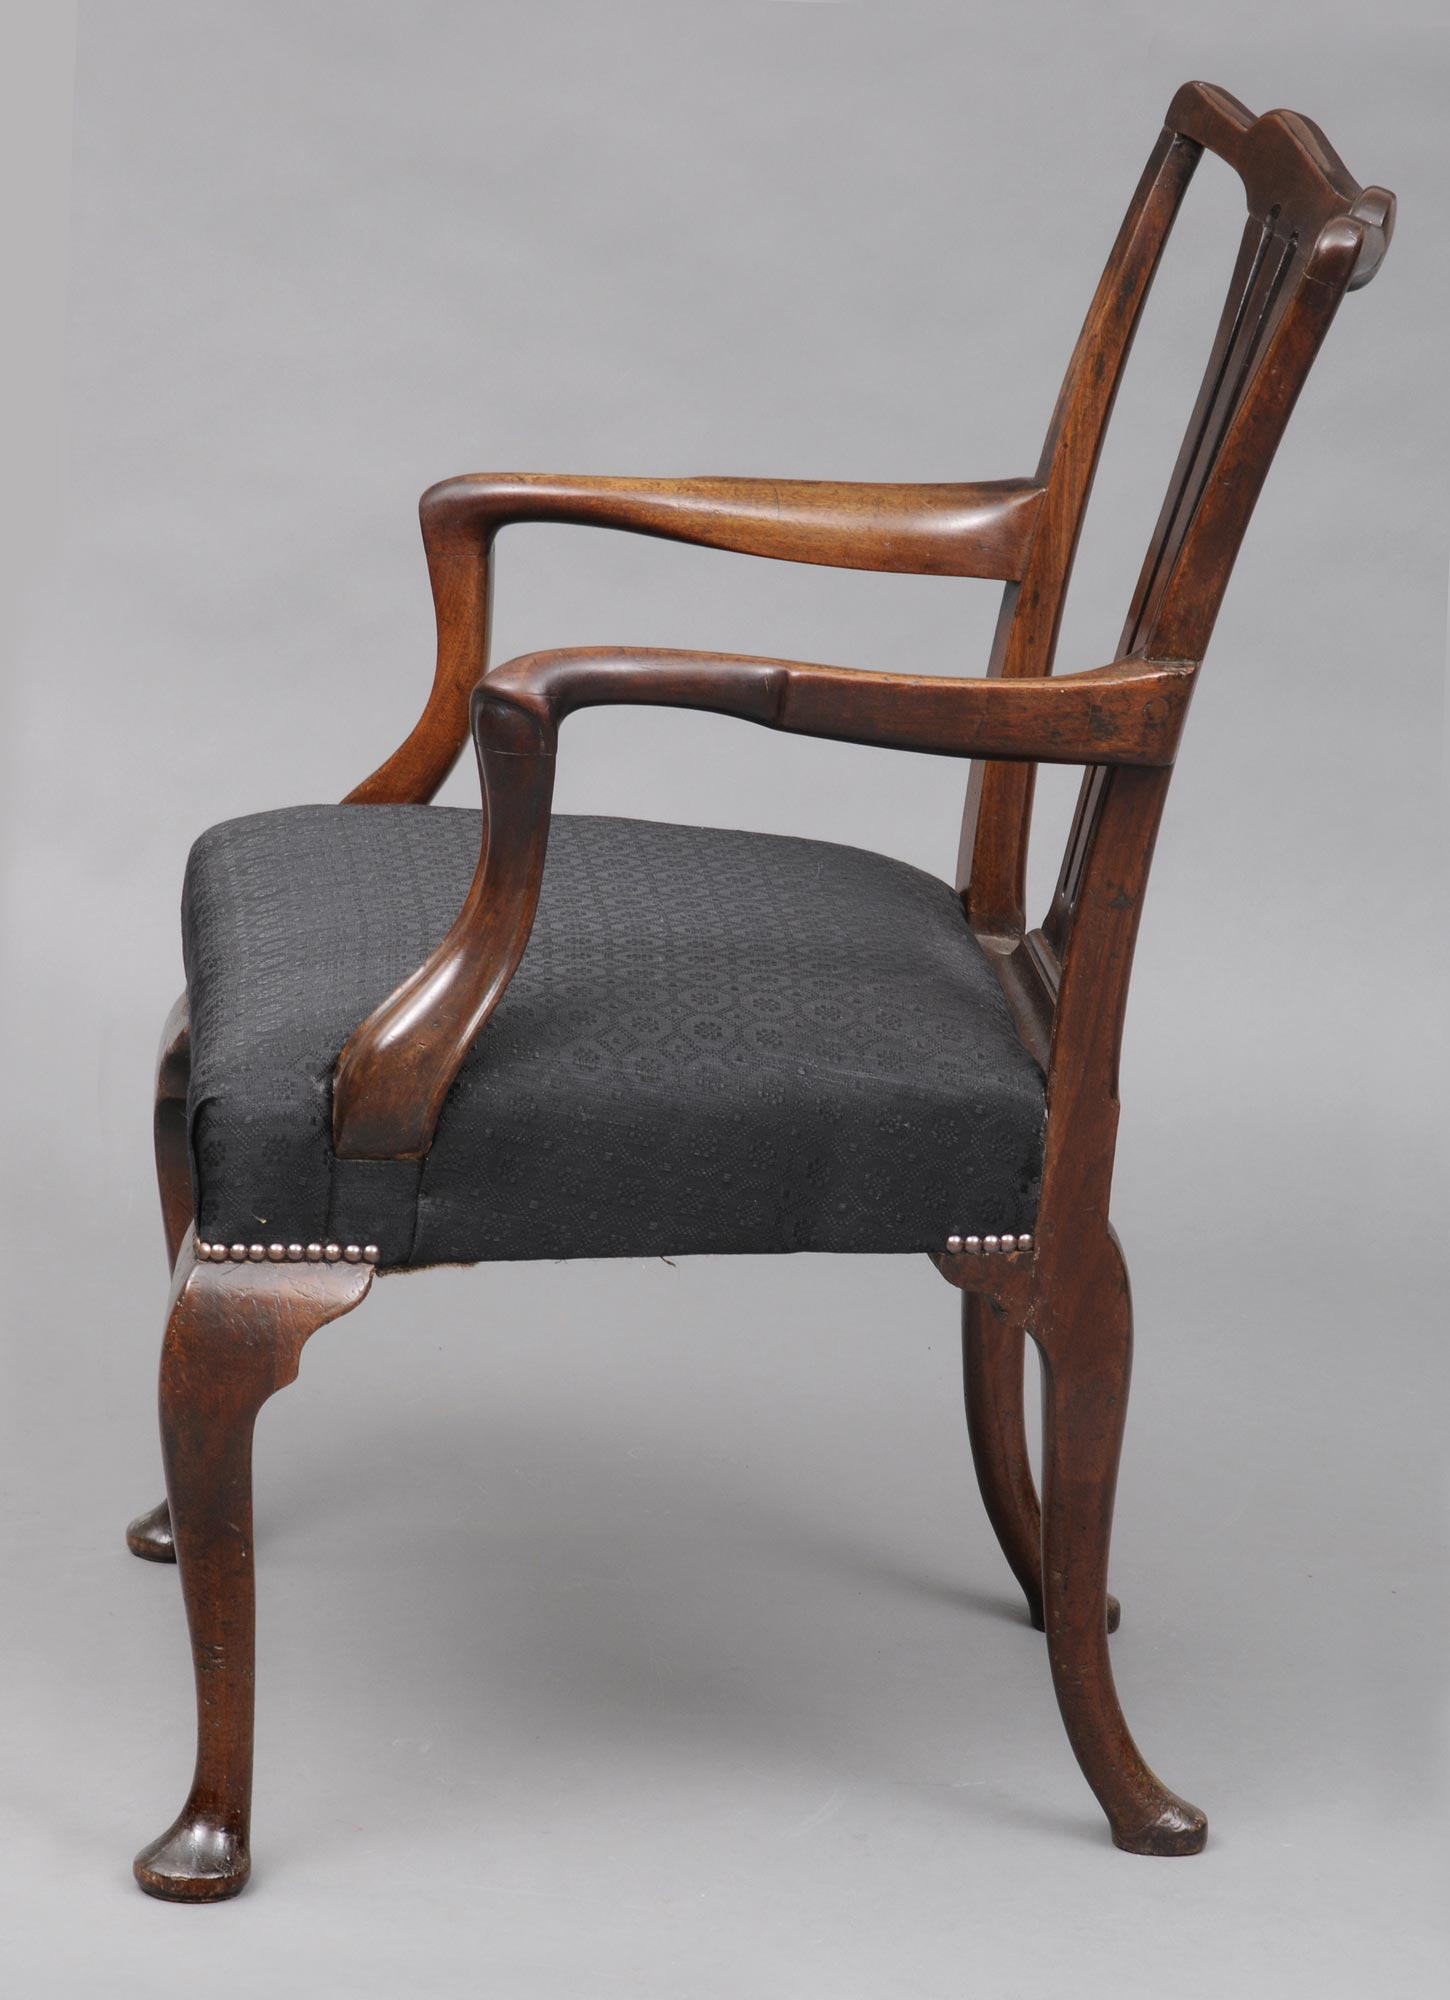 Relatively Antique Mahogany Armchair | English George II Chippendale Armchair KI75